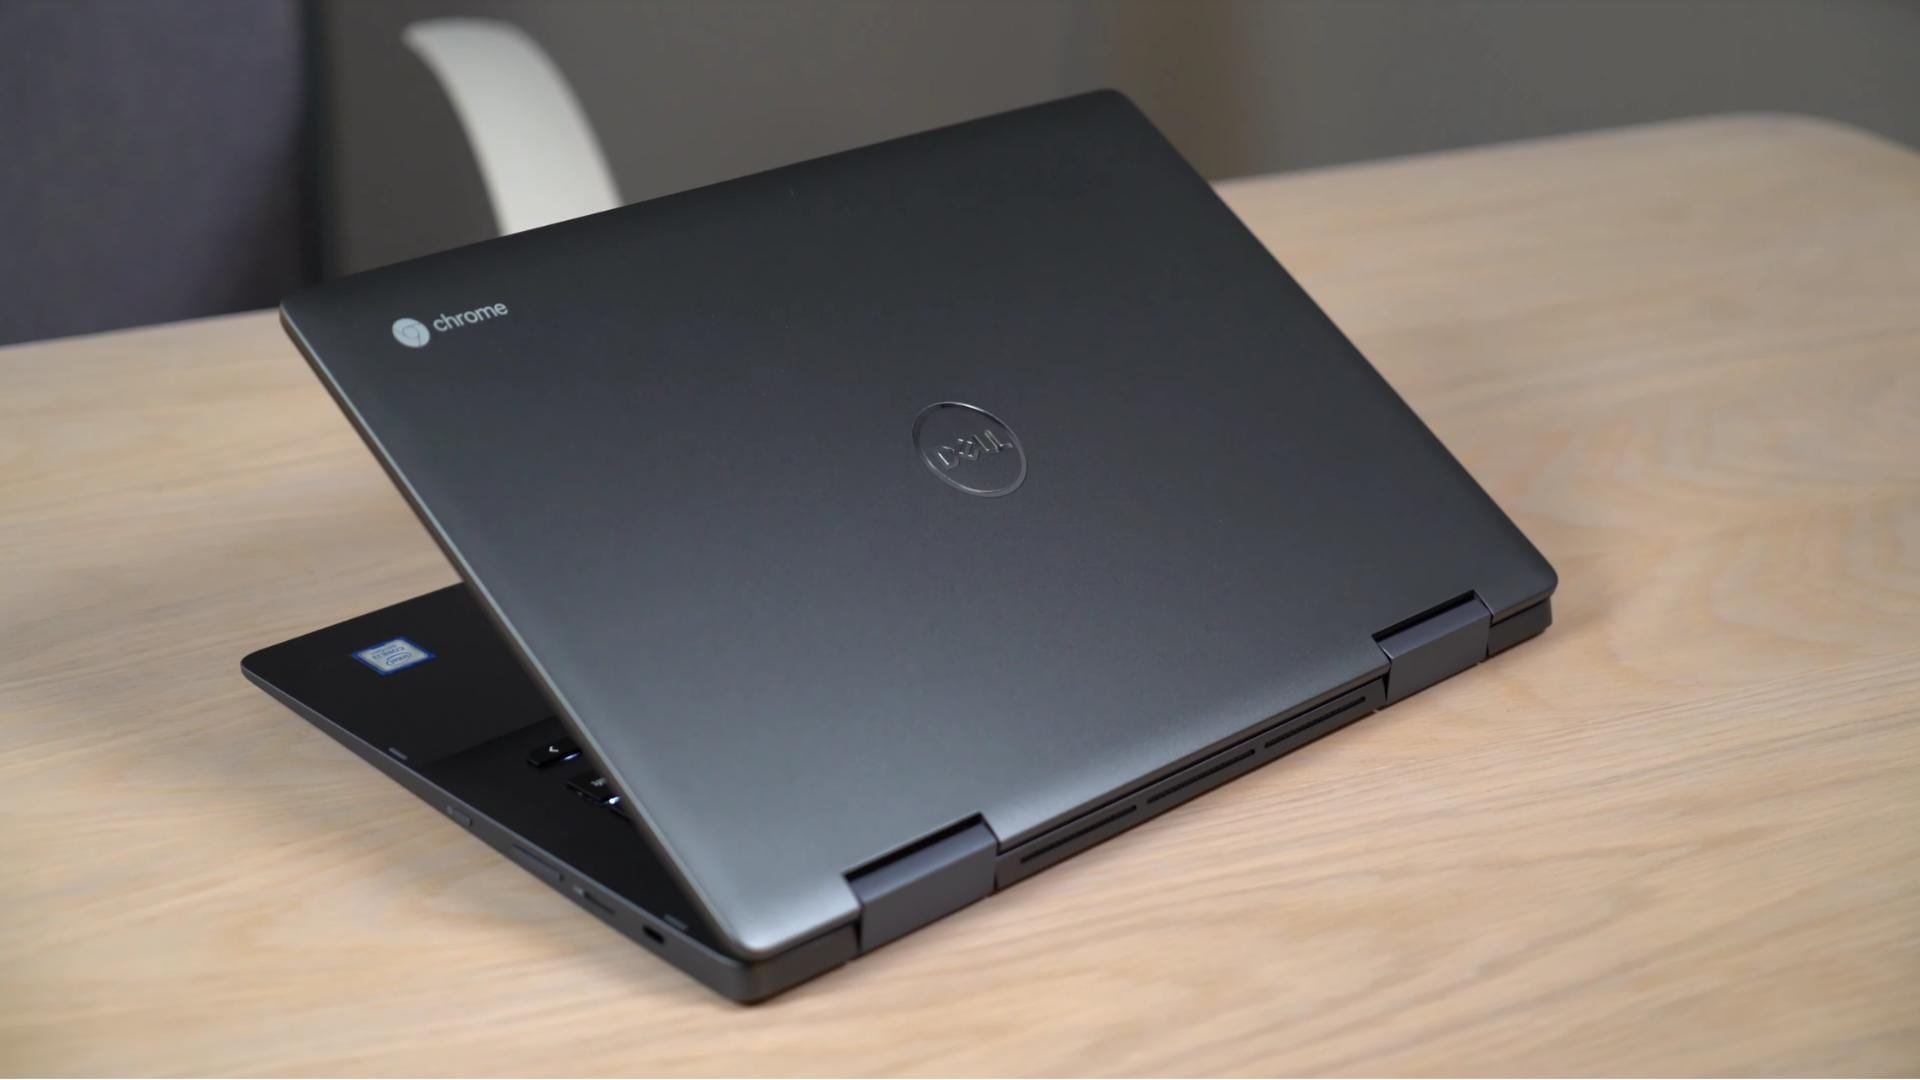 Get the Dell Inspiron Chromebook for only $349 with this insane deal